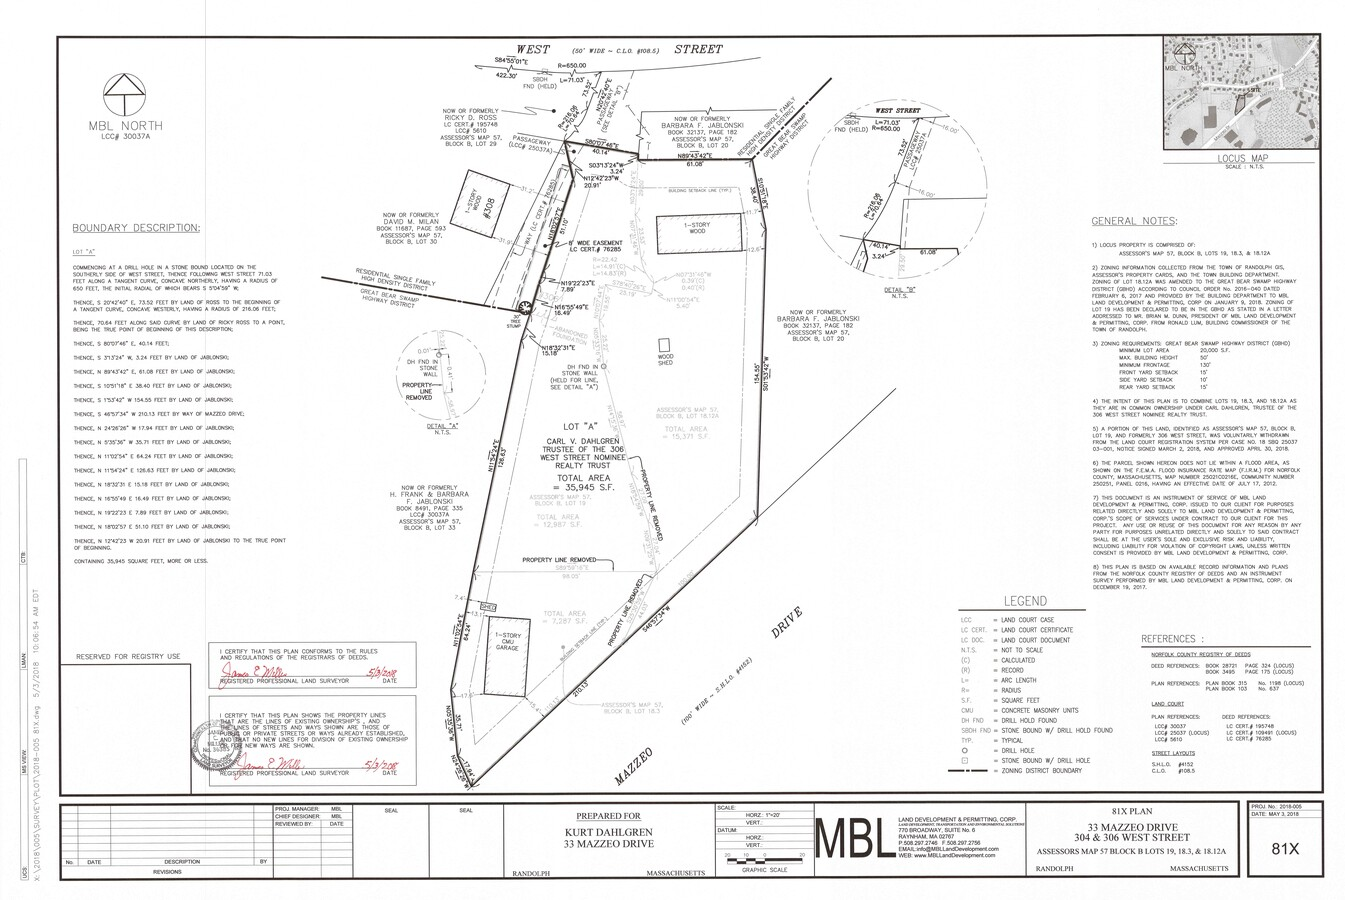 33 Mazzeo Plot Plan